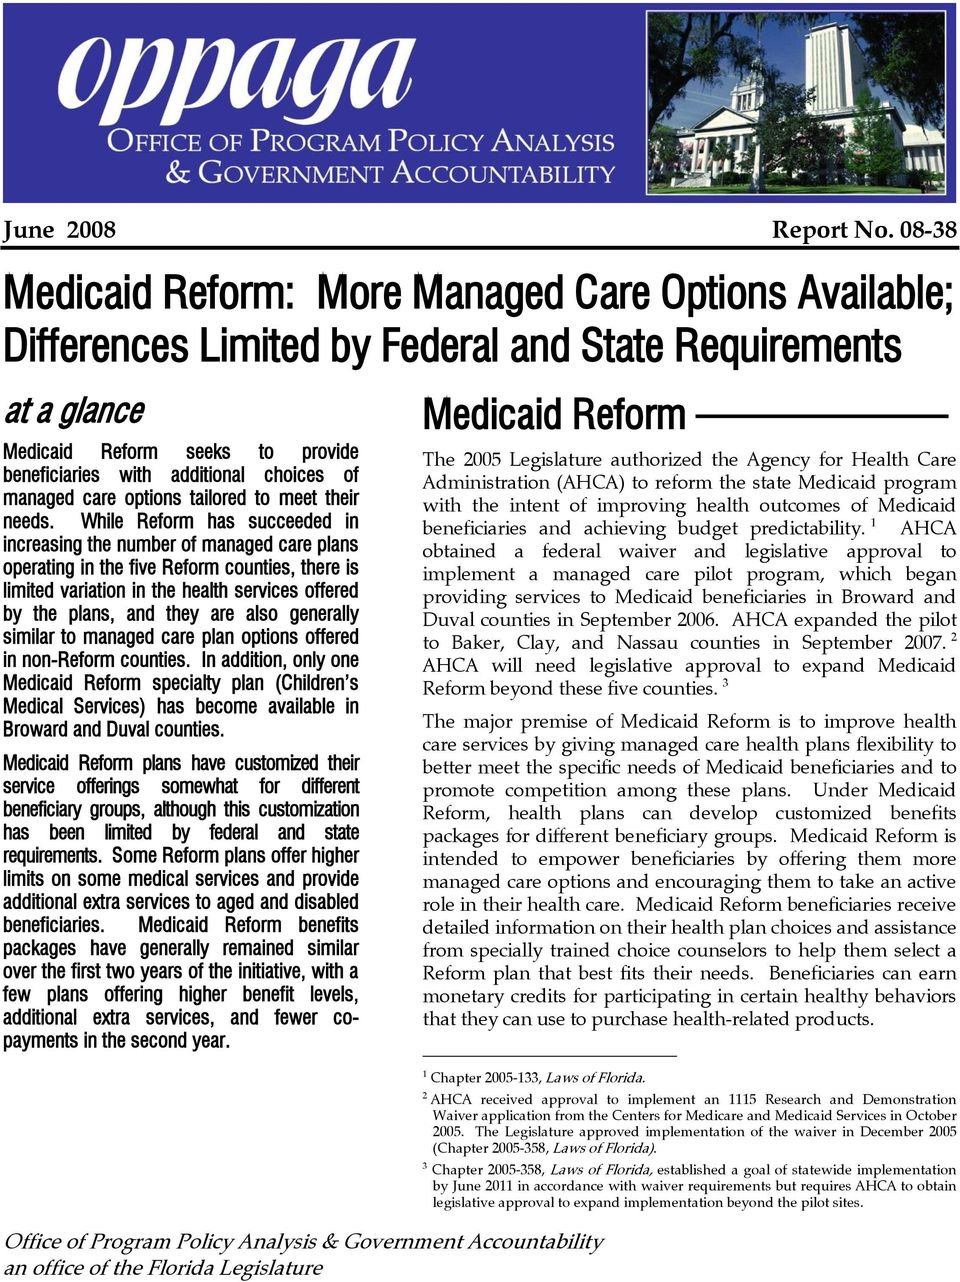 additional choices of managed care options tailored to meet their needs.